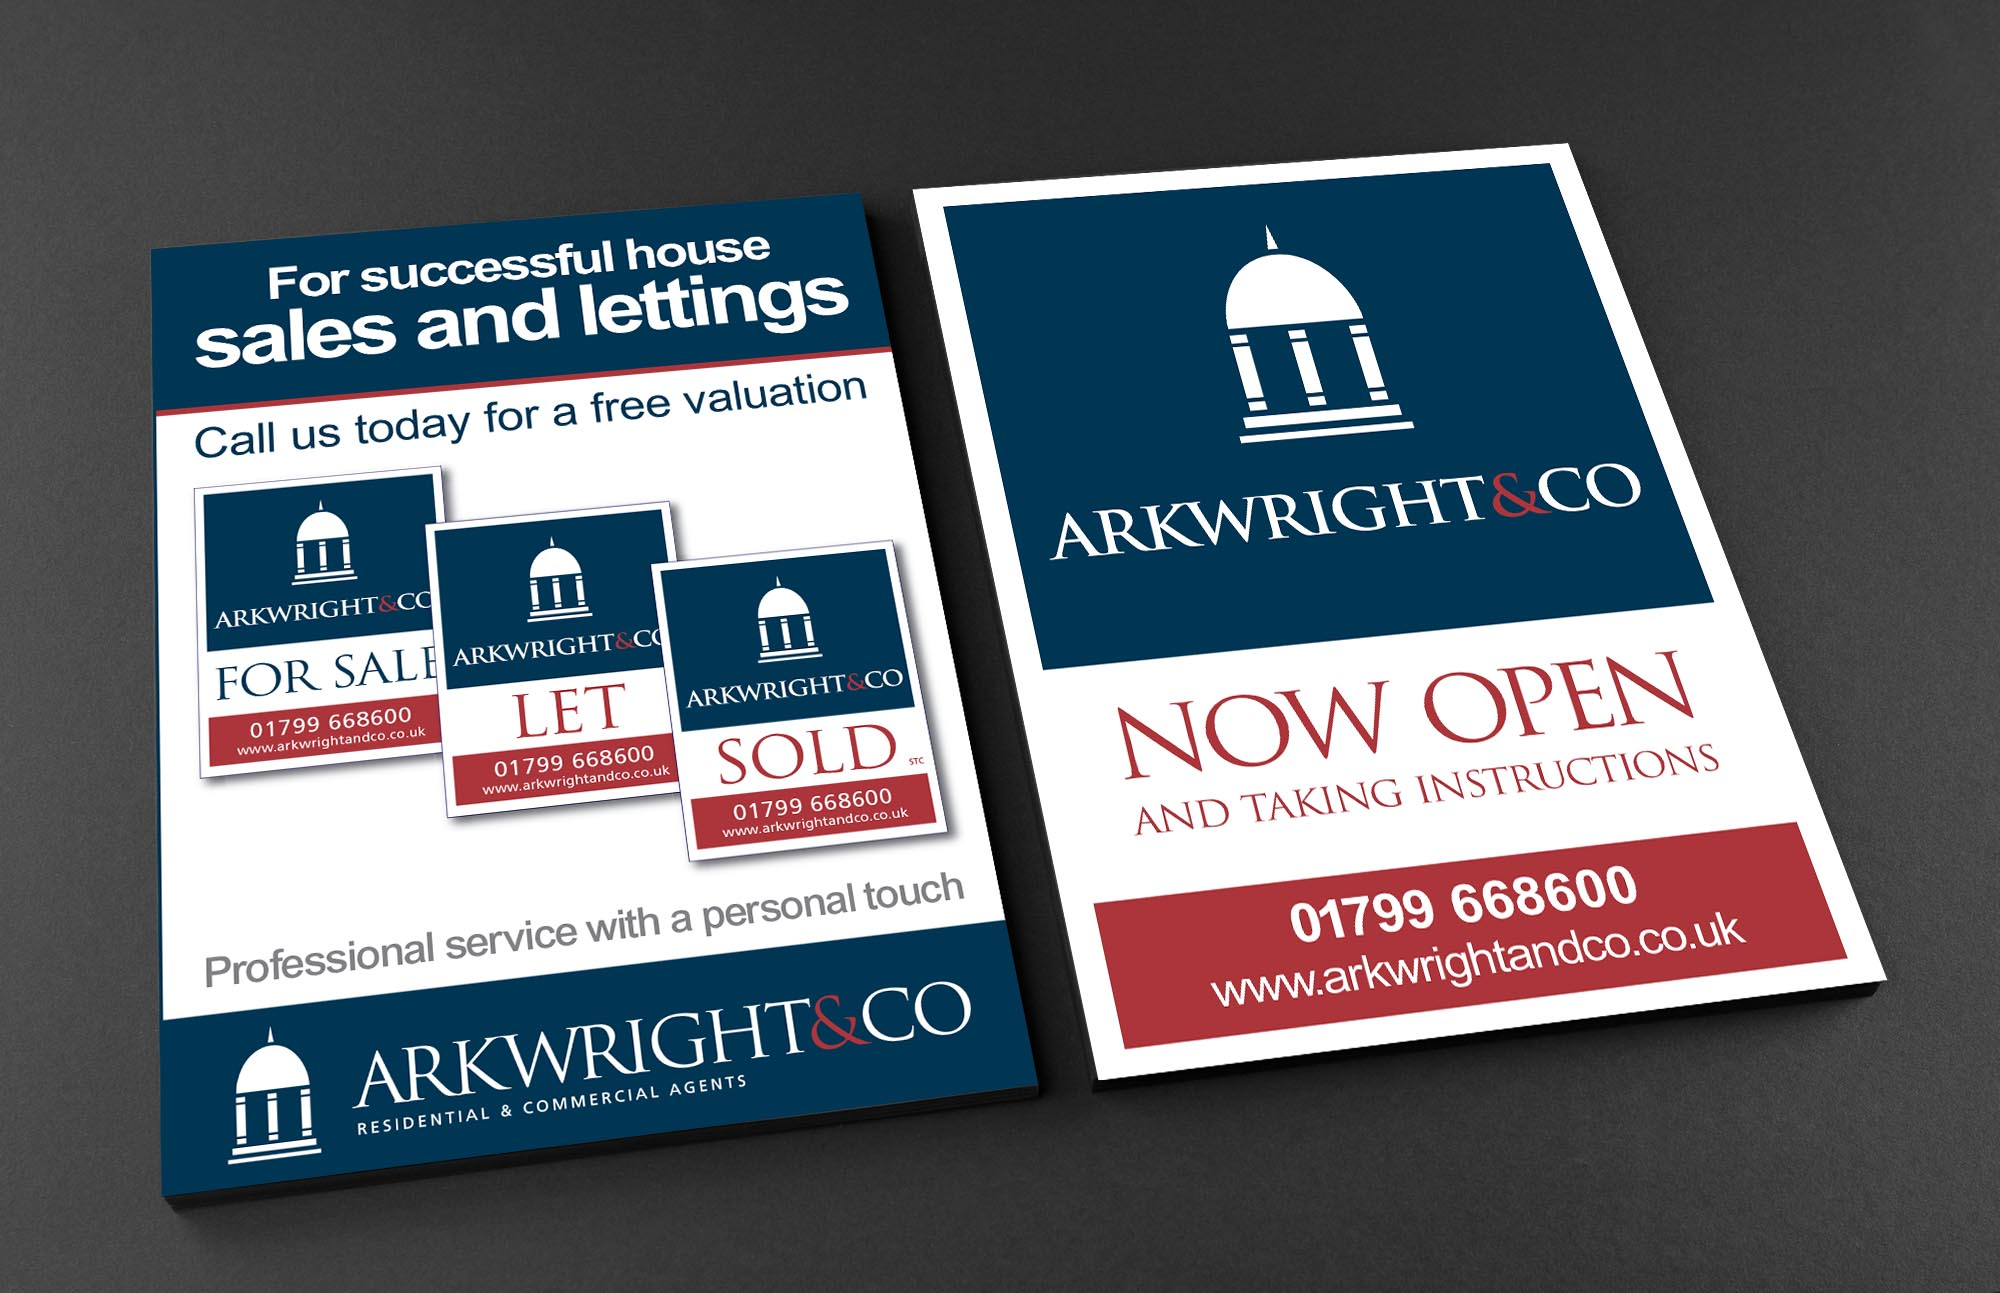 A5 Leaflets Arkwright & Co